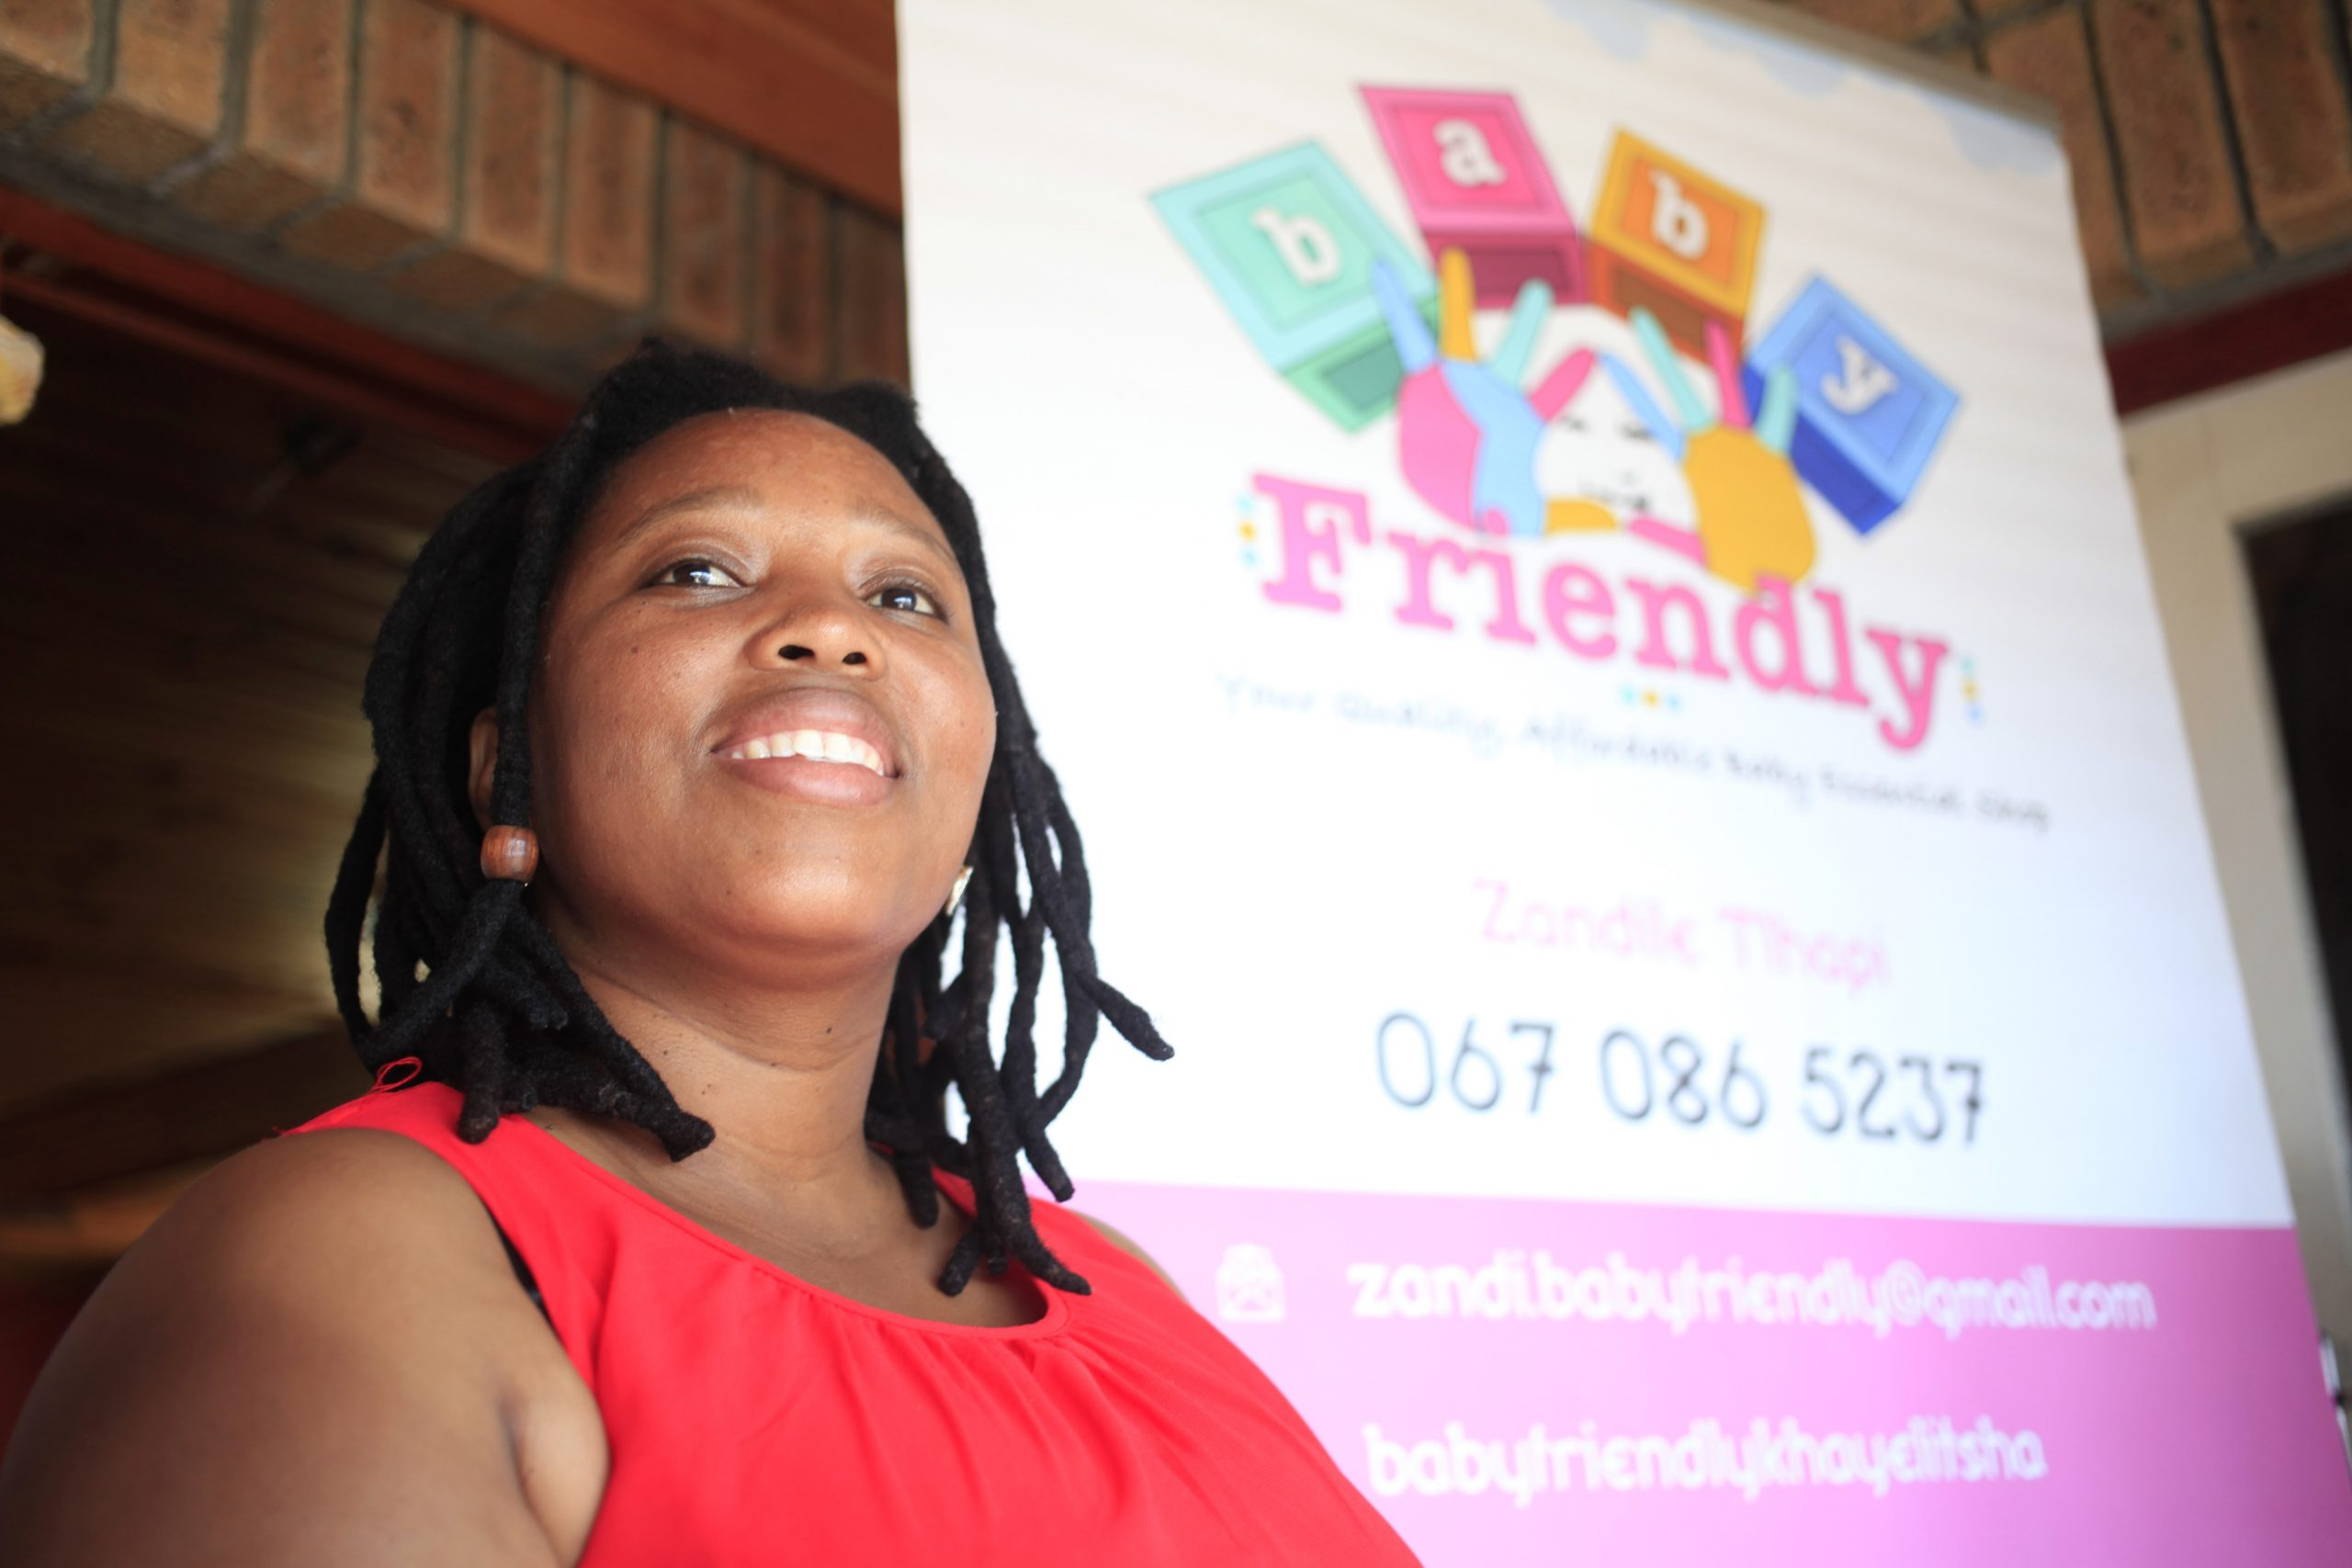 3 February 2020: When Zandile Tlhapi was pregnant with her second child, she was inspired to supply cheap, quality clothing and toys to her community.